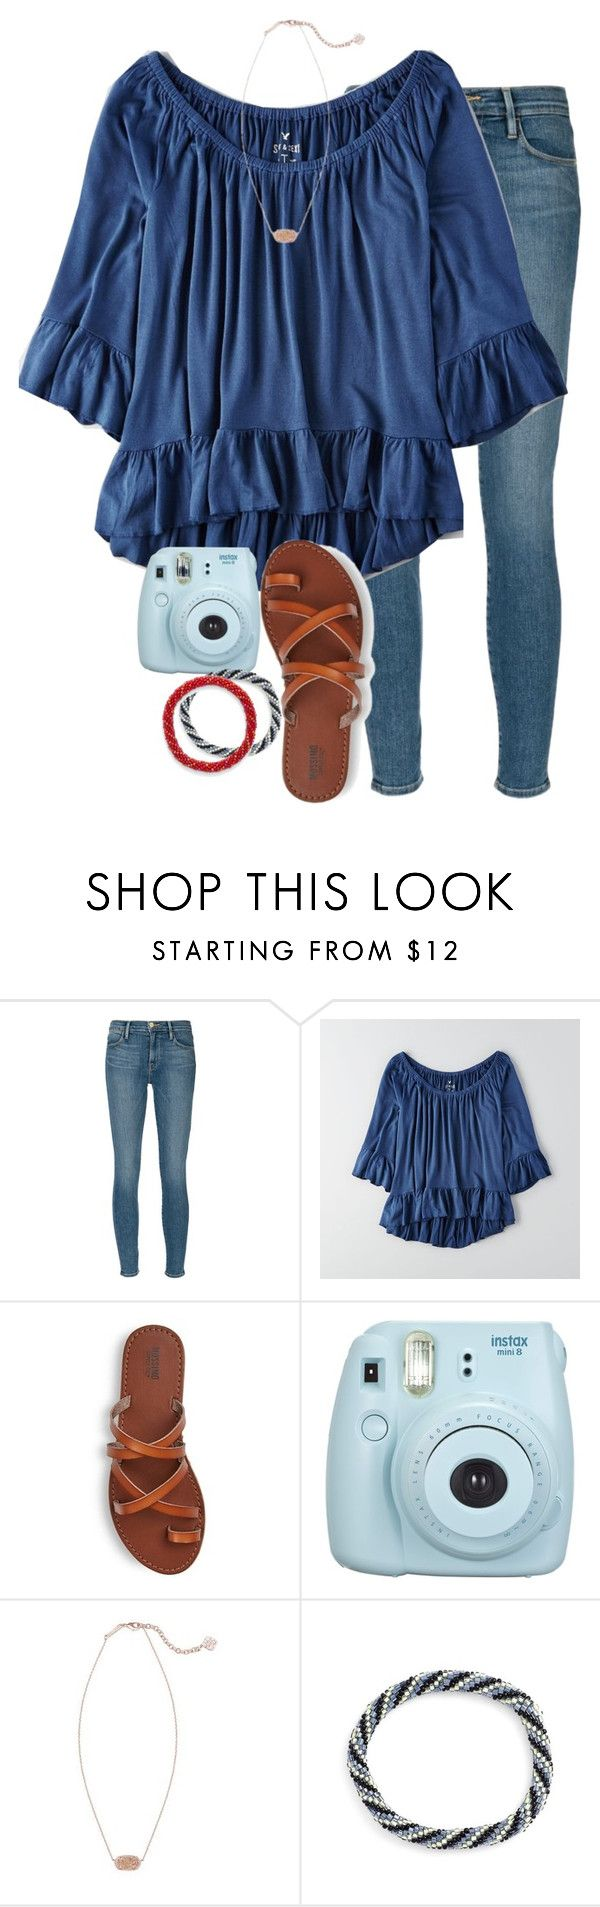 """""""getting this shirt for my bday!!"""" by elizabethannee ❤ liked on Polyvore featuring Frame Denim, American Eagle Outfitters, Kendra Scott and Aid Through Trade"""